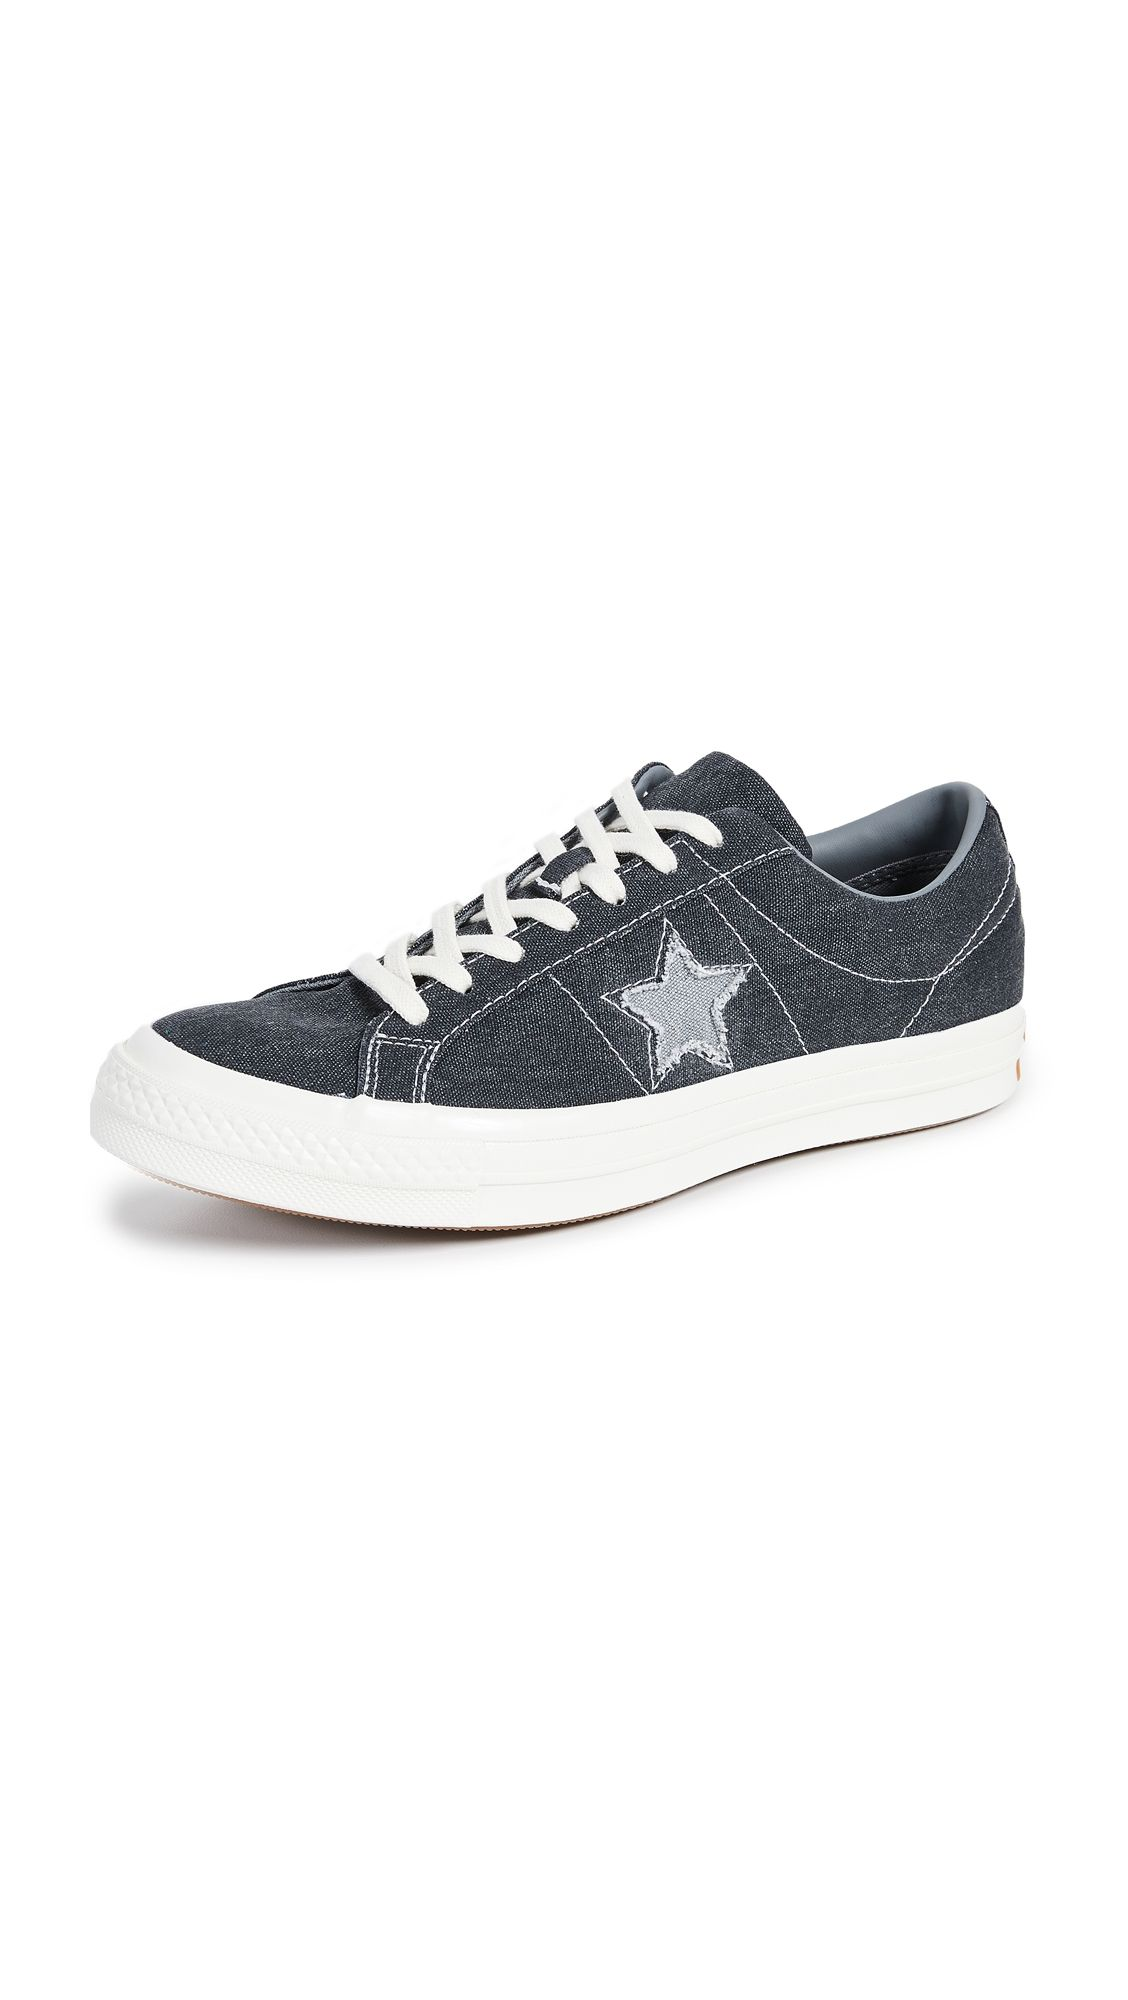 3679a3a96c24 CONVERSE ONE STAR SUNBAKED OXFORDS.  converse  shoes